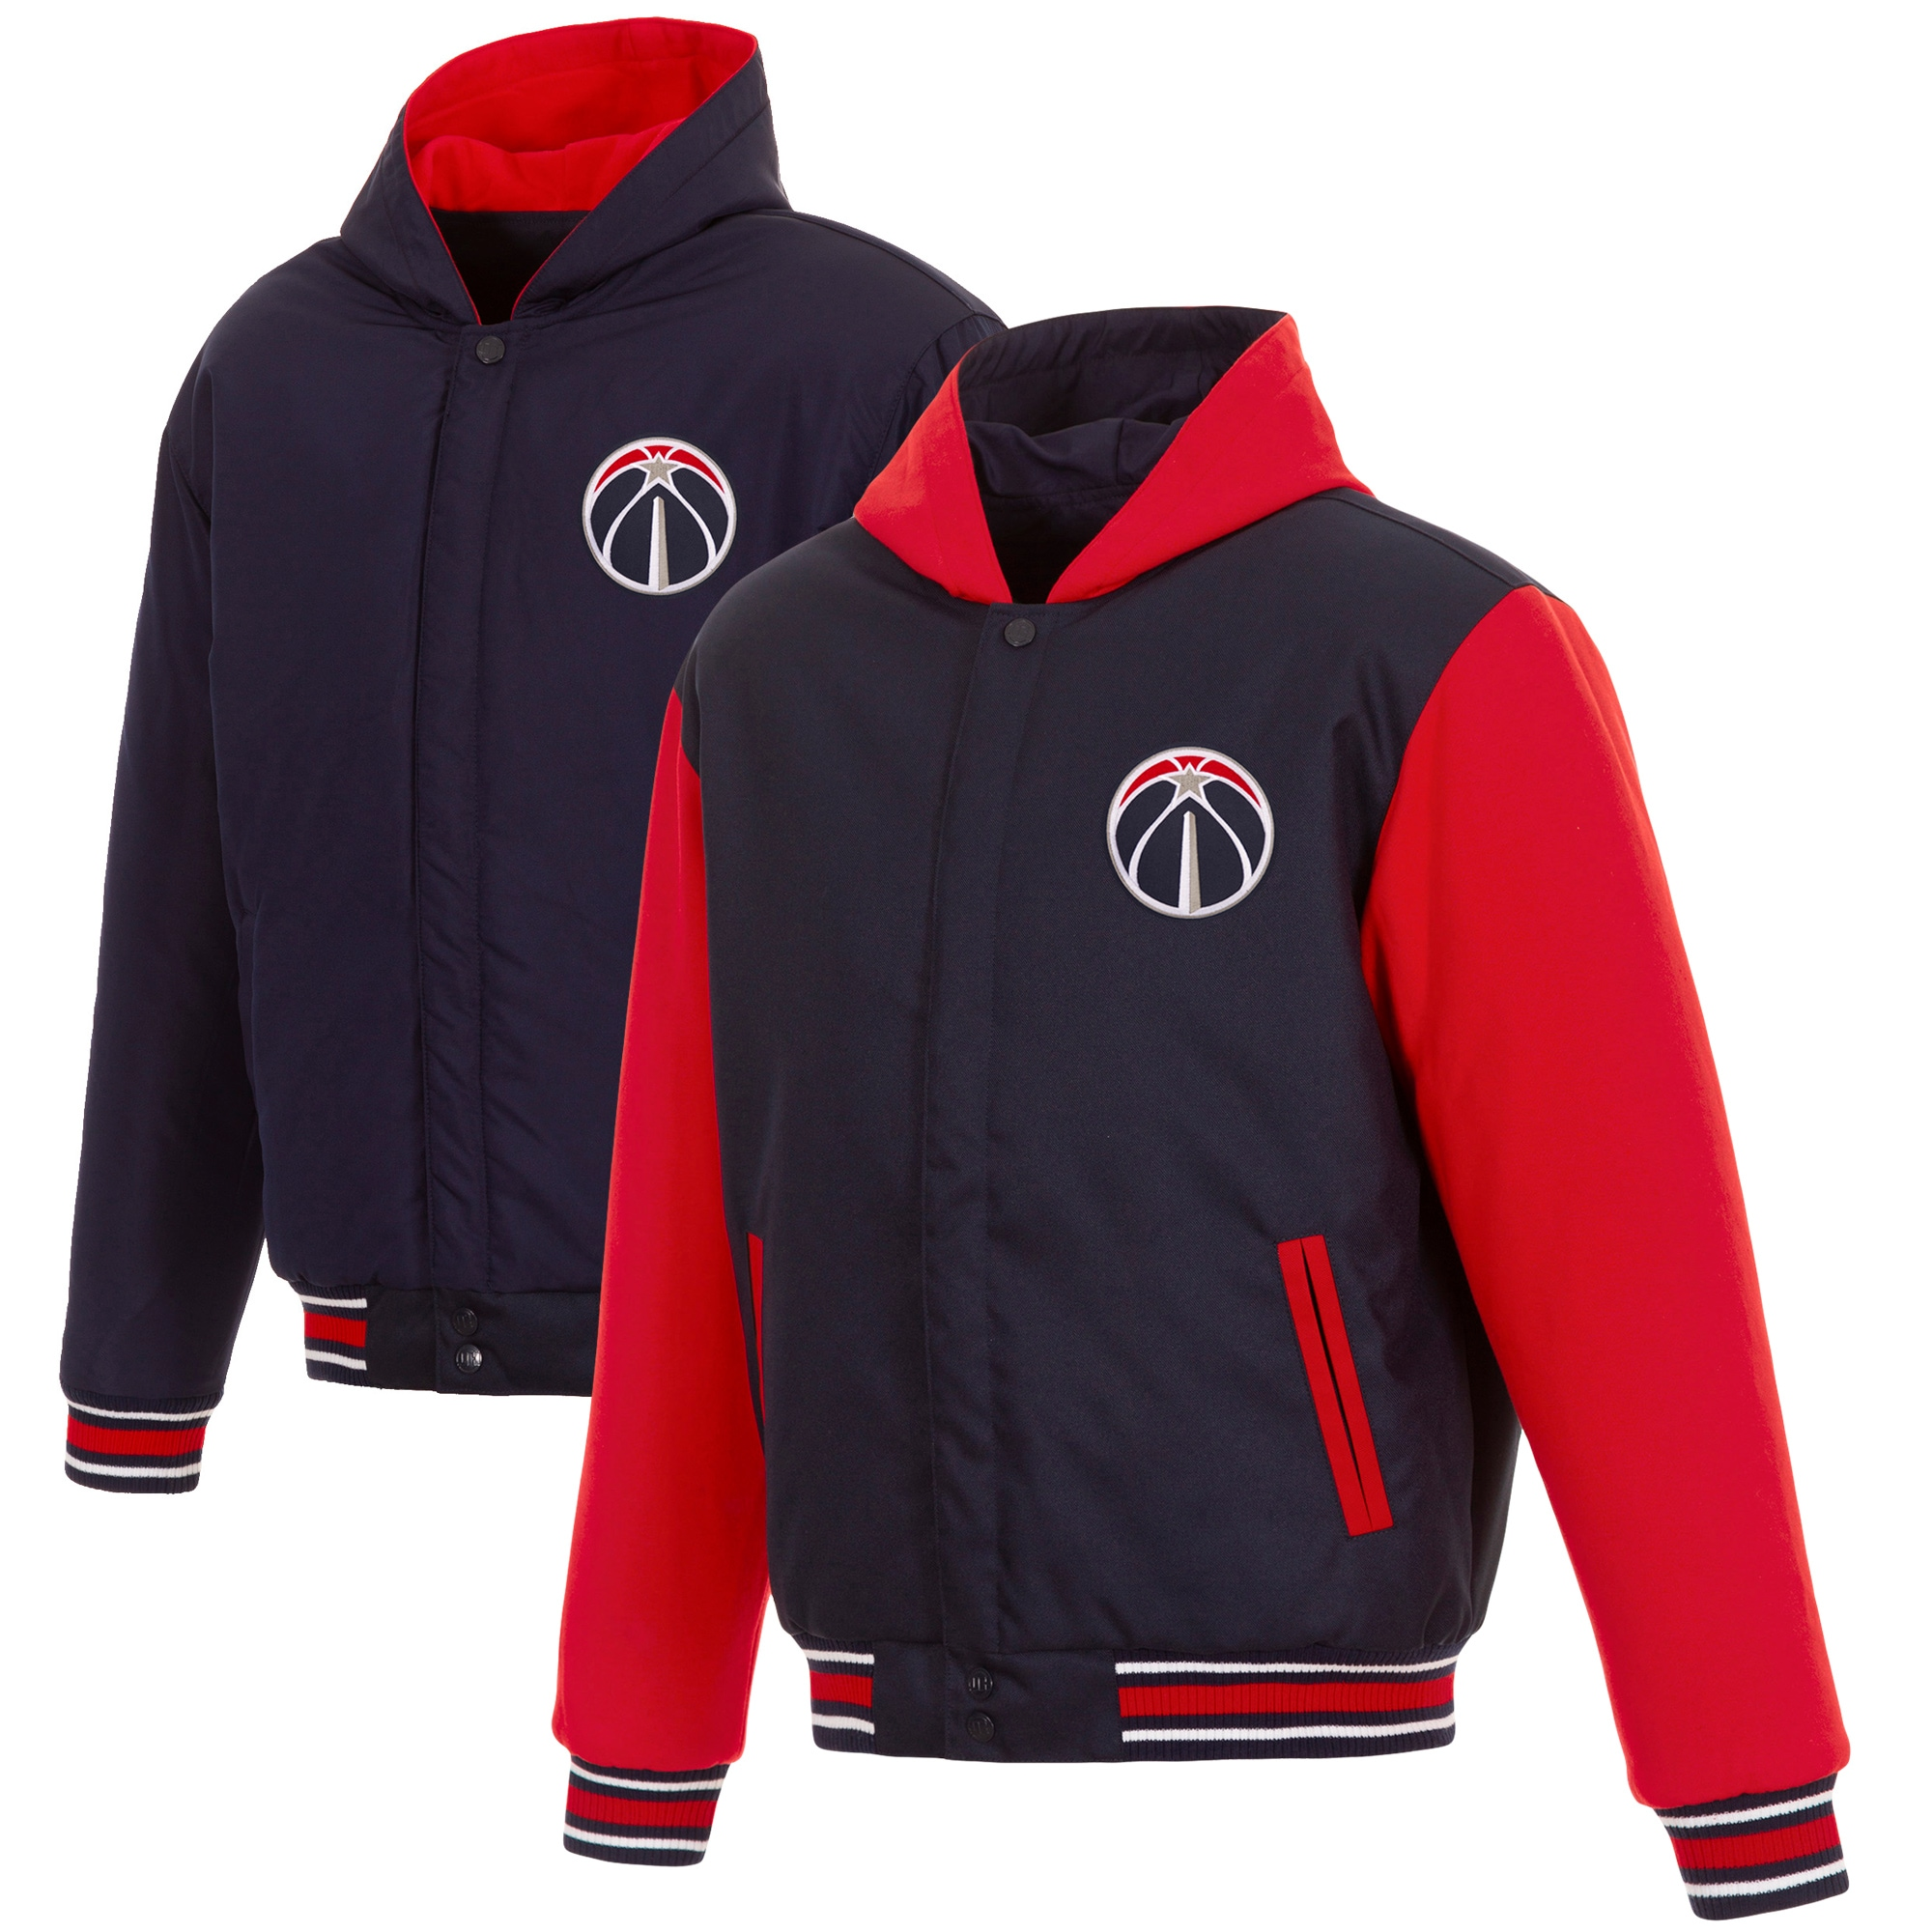 Washington Wizards JH Design Reversible Poly-Twill Hooded Jacket with Fleece Sleeves - Navy/Red